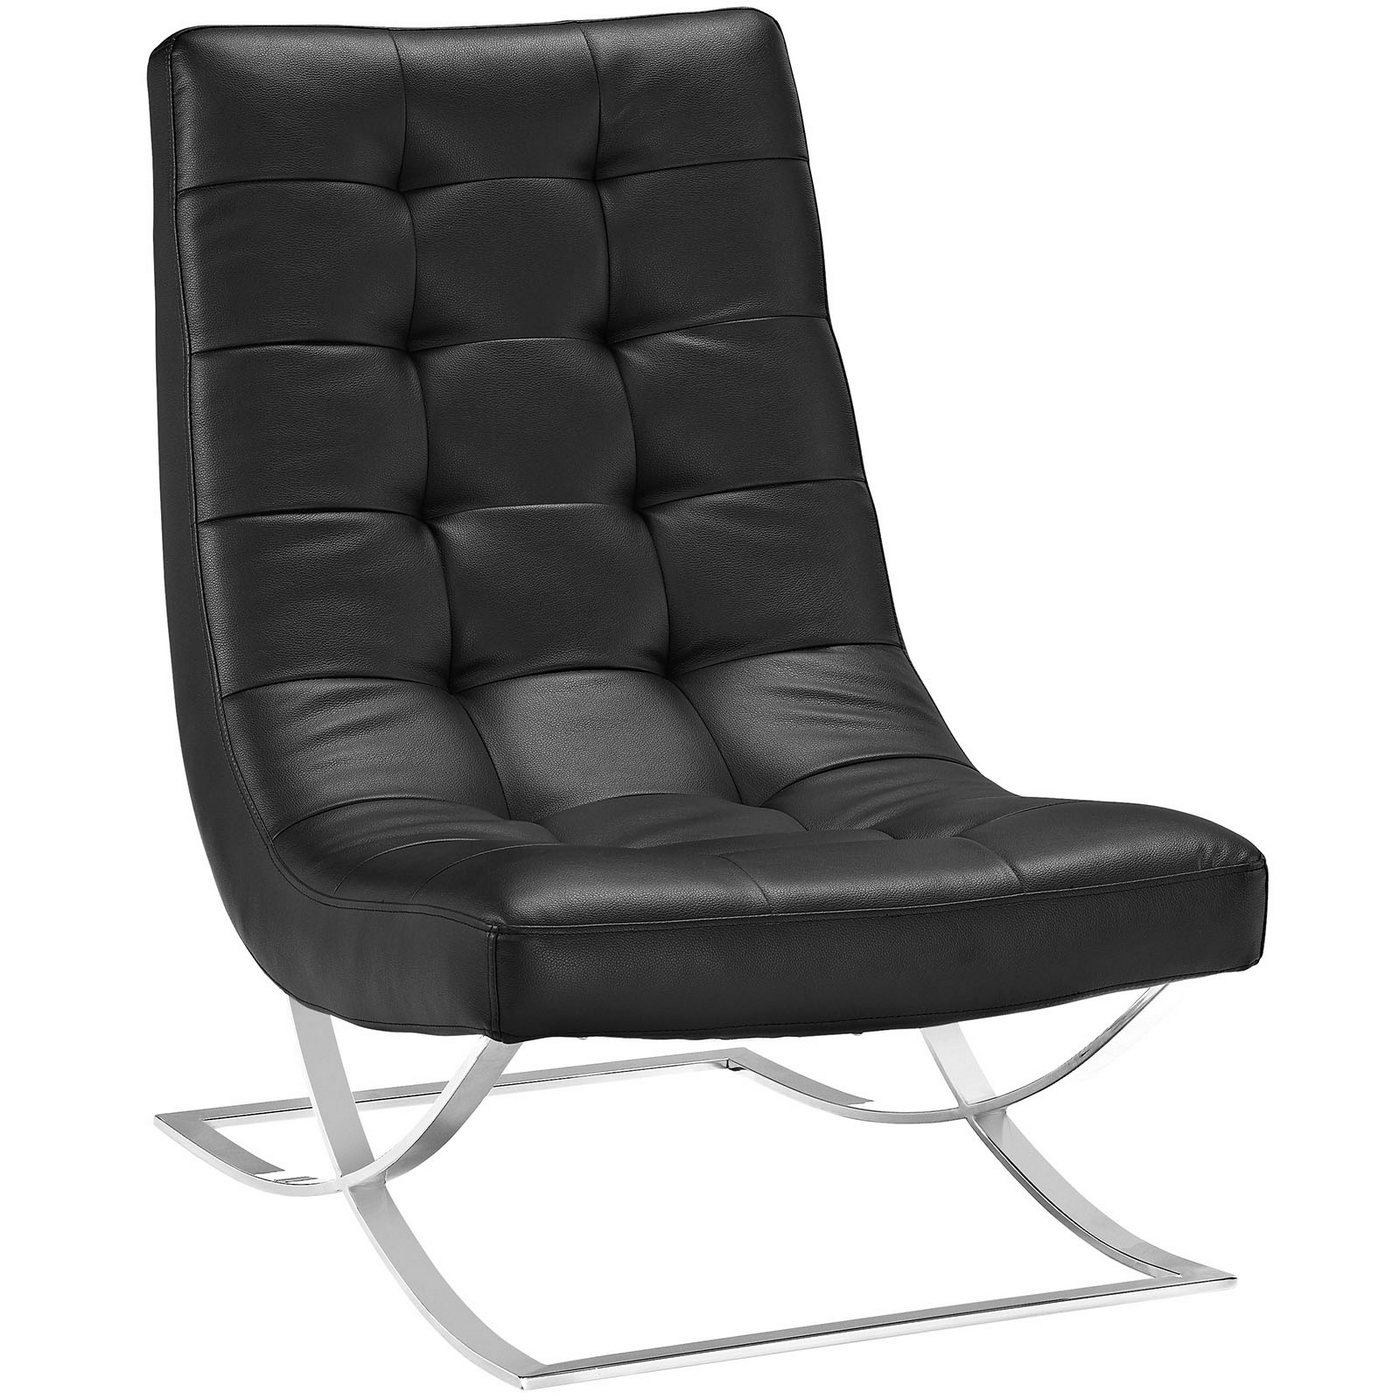 Slope Modern Button-tufted Vinyl Lounge Chair With Chrome